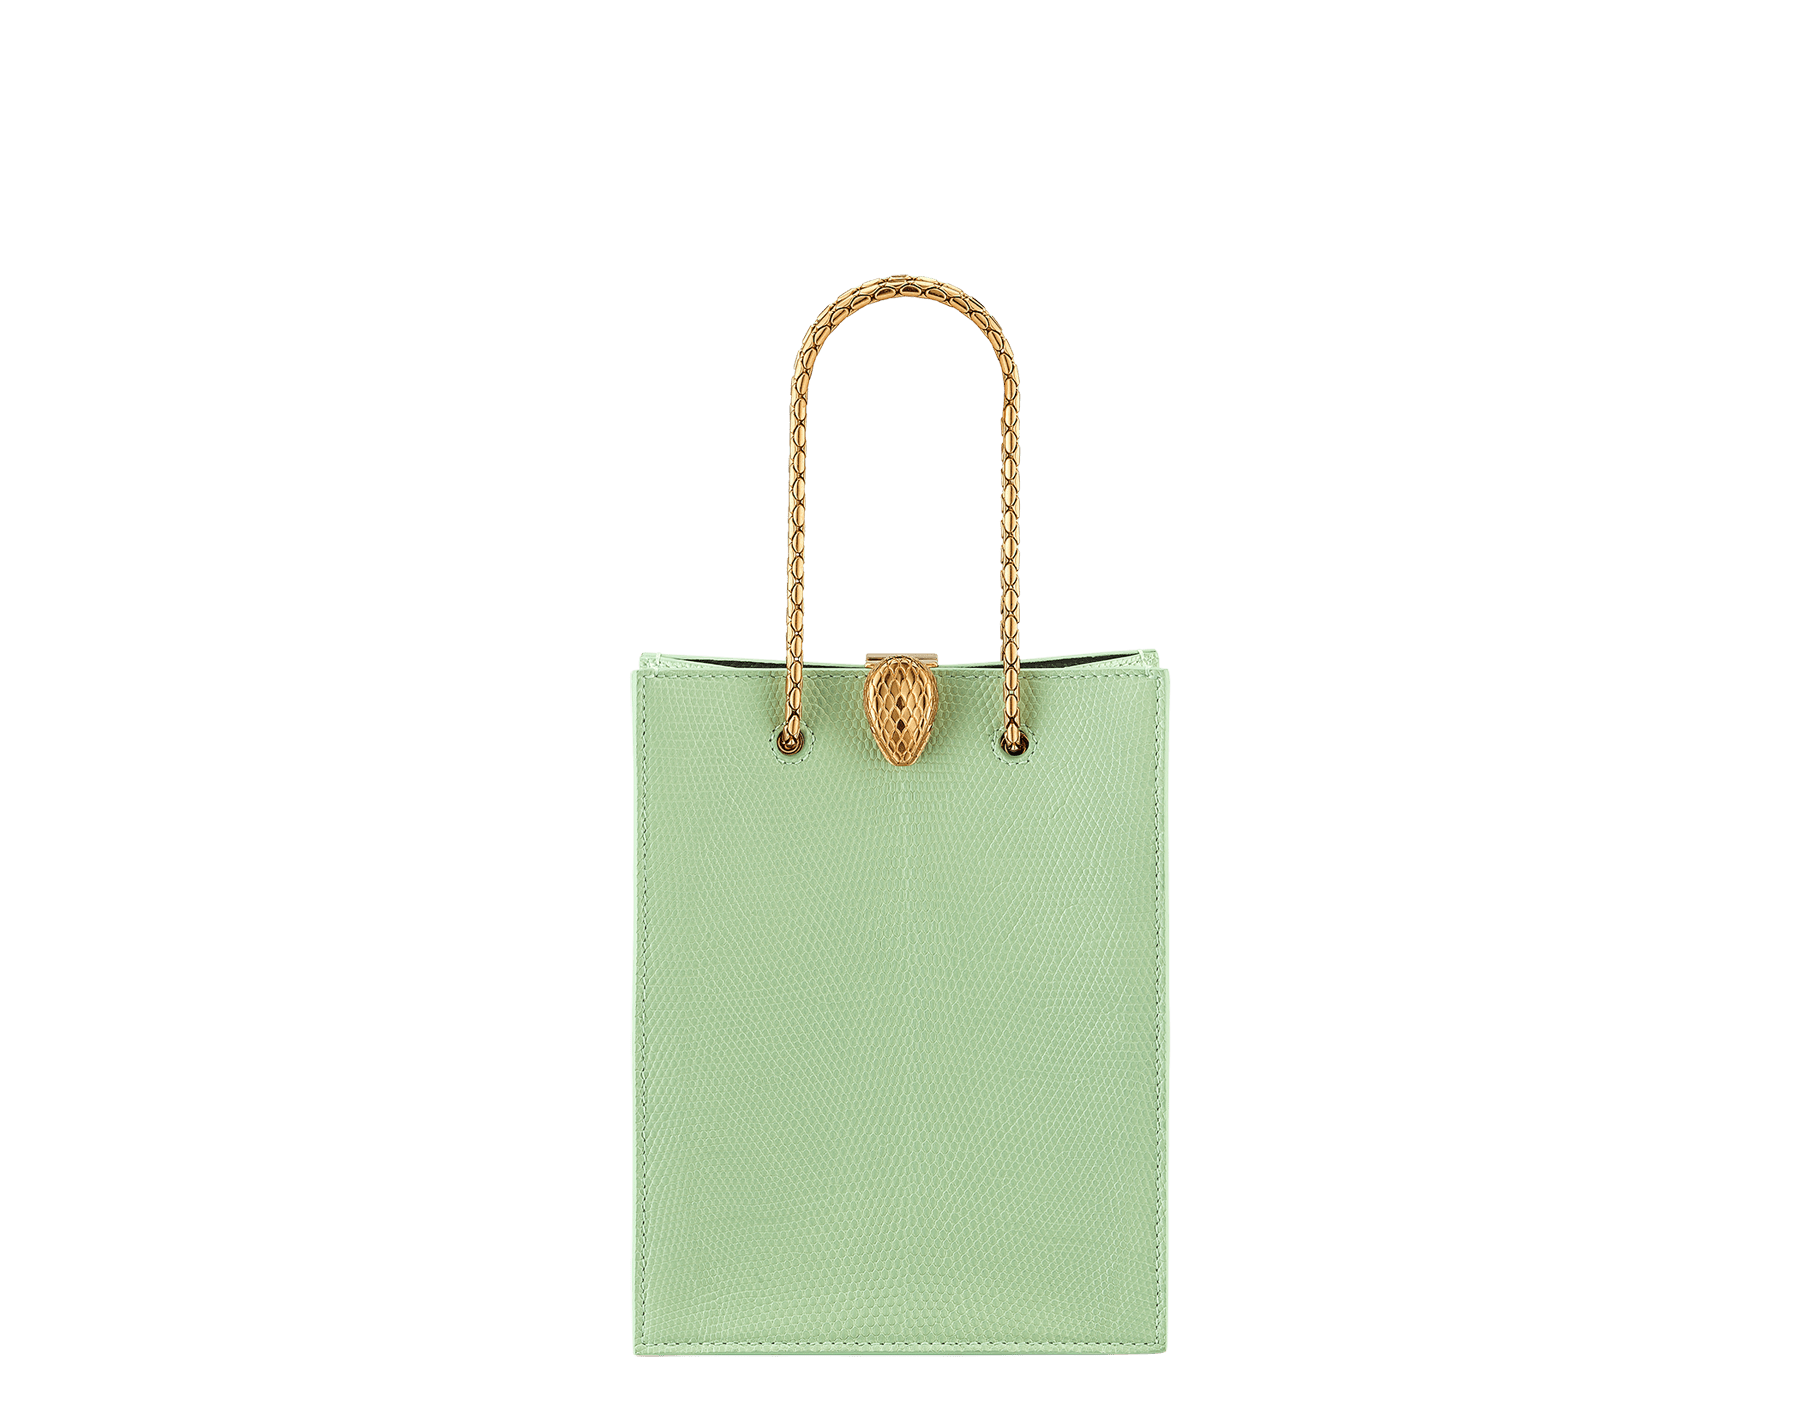 Alexander Wang x Bvlgari mini shopping tote bag in mint lizard skin and black calf leather. New Serpenti head closure in antique gold plated brass with tempting red enamel eyes. Limited edition. 288727 image 1